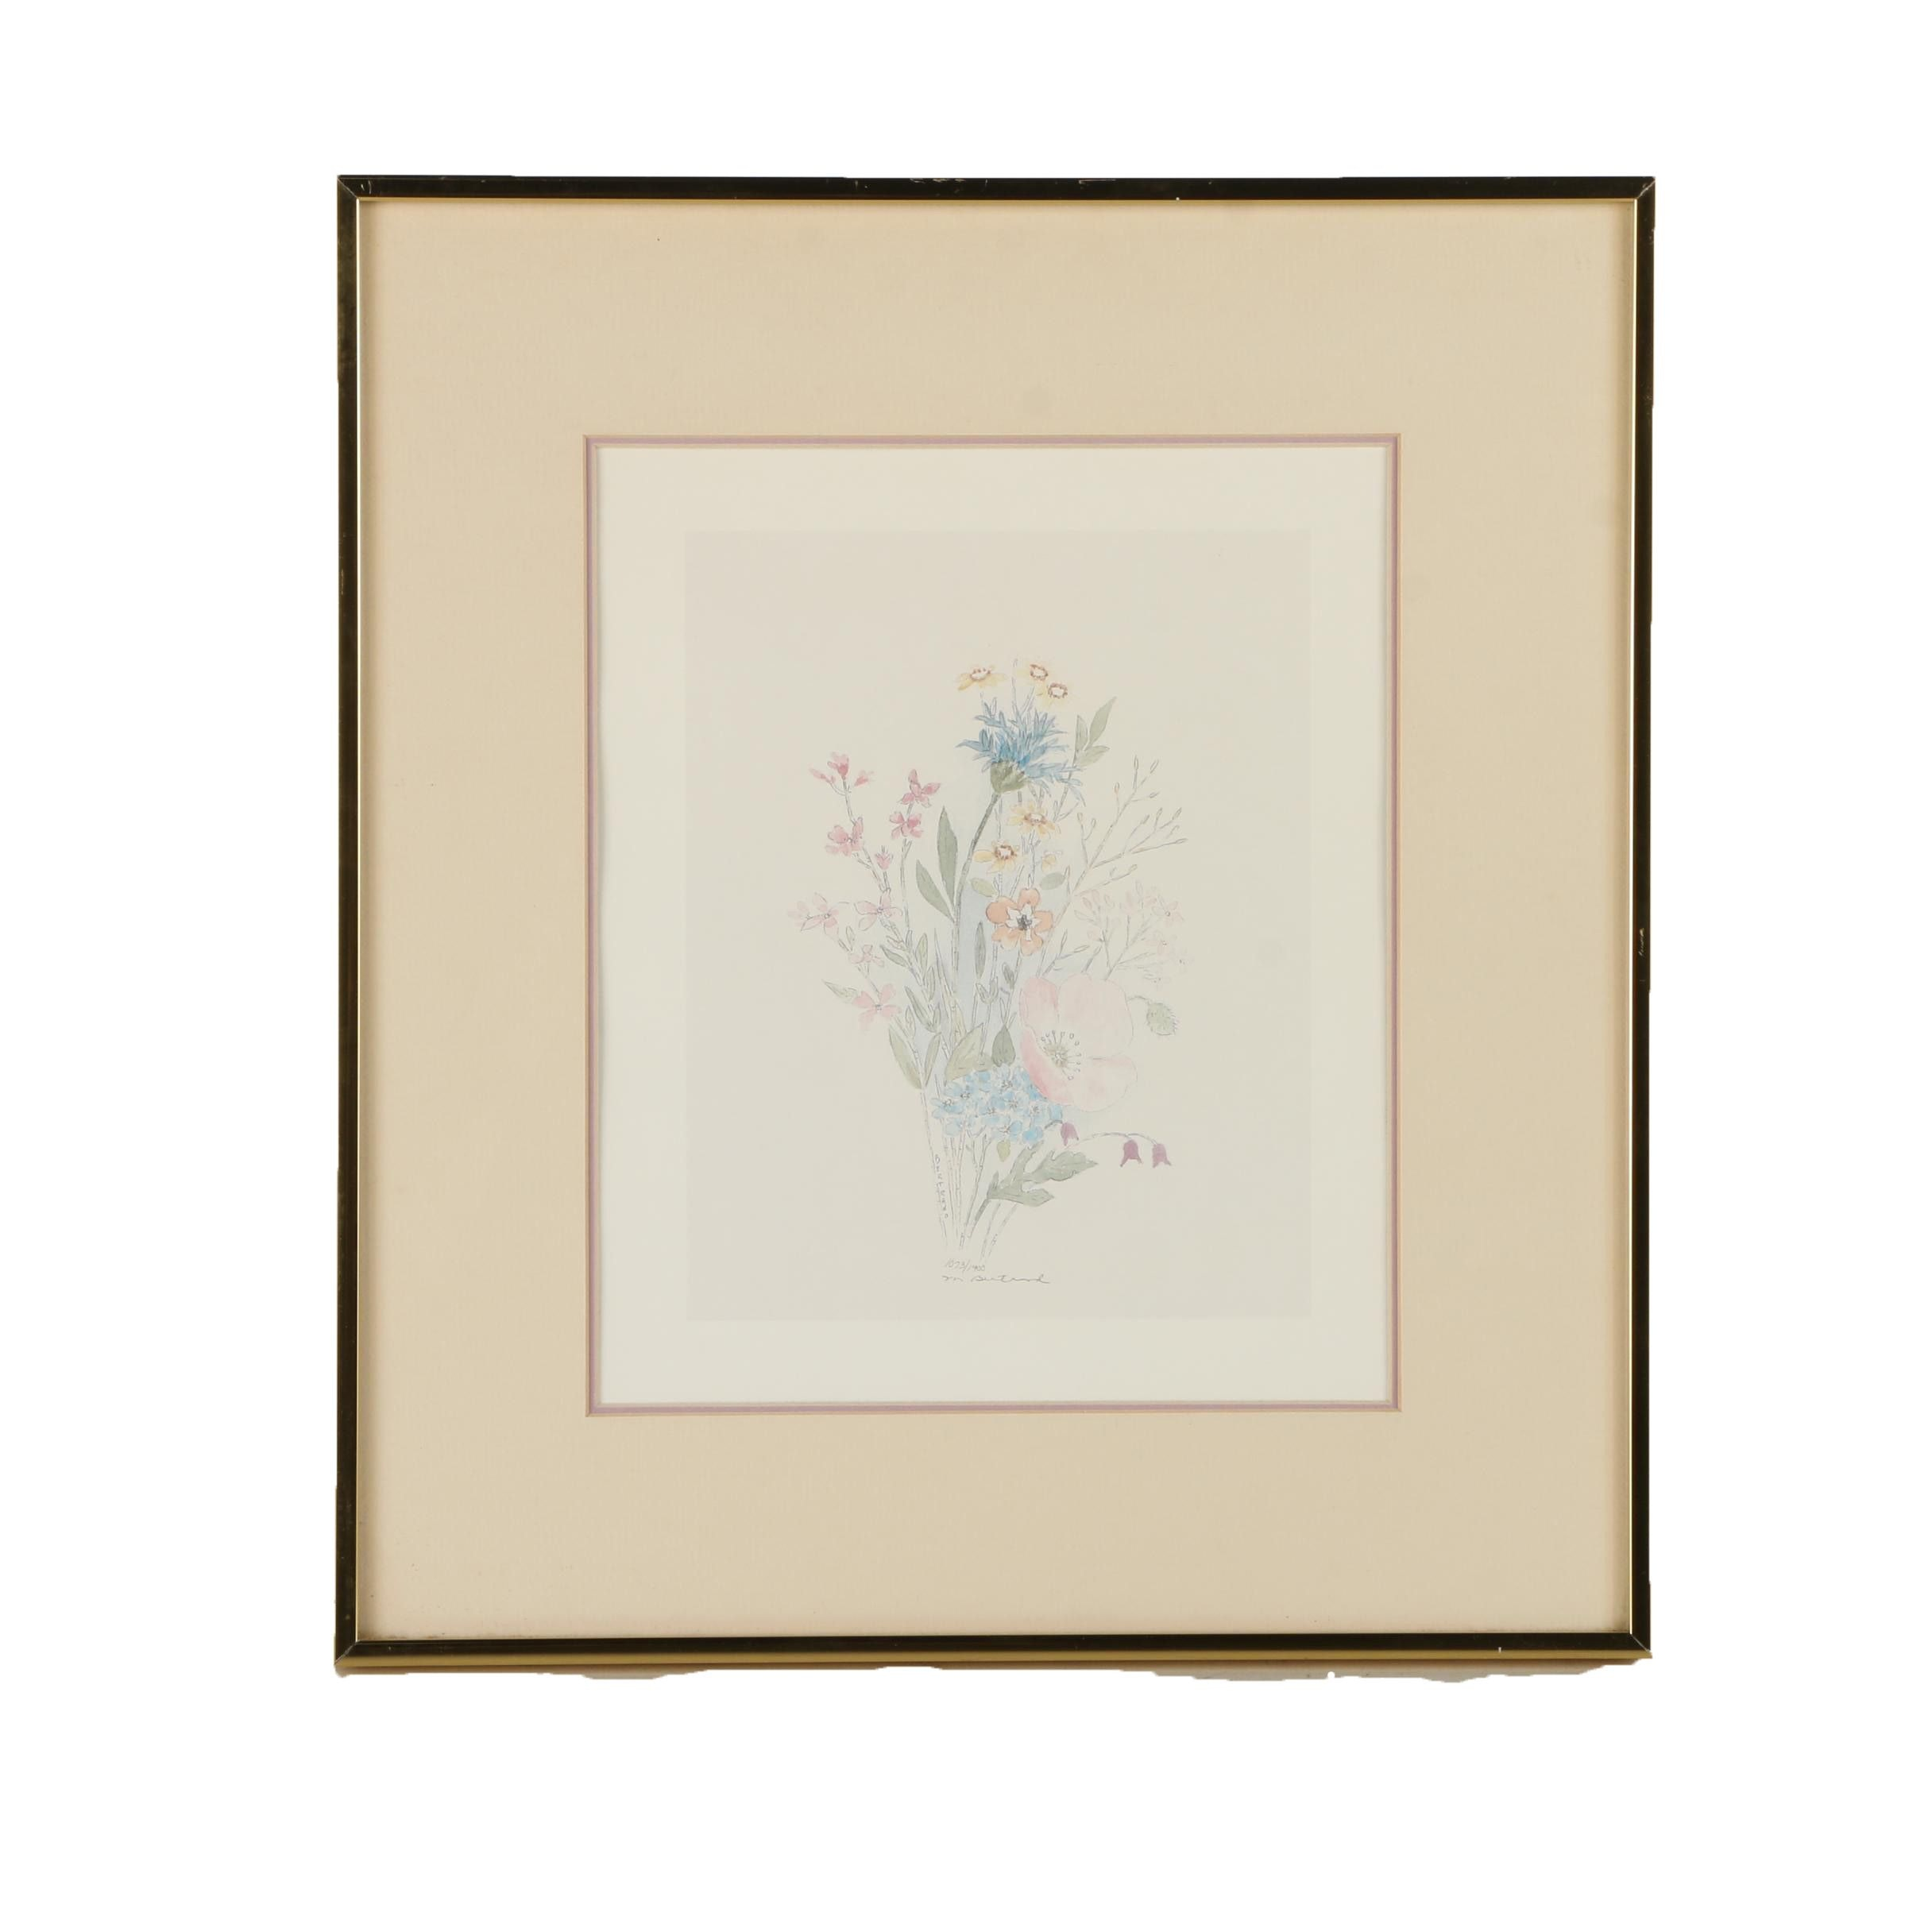 Mary Bertrand Limited Edition Offset Lithograph of a Bouquet